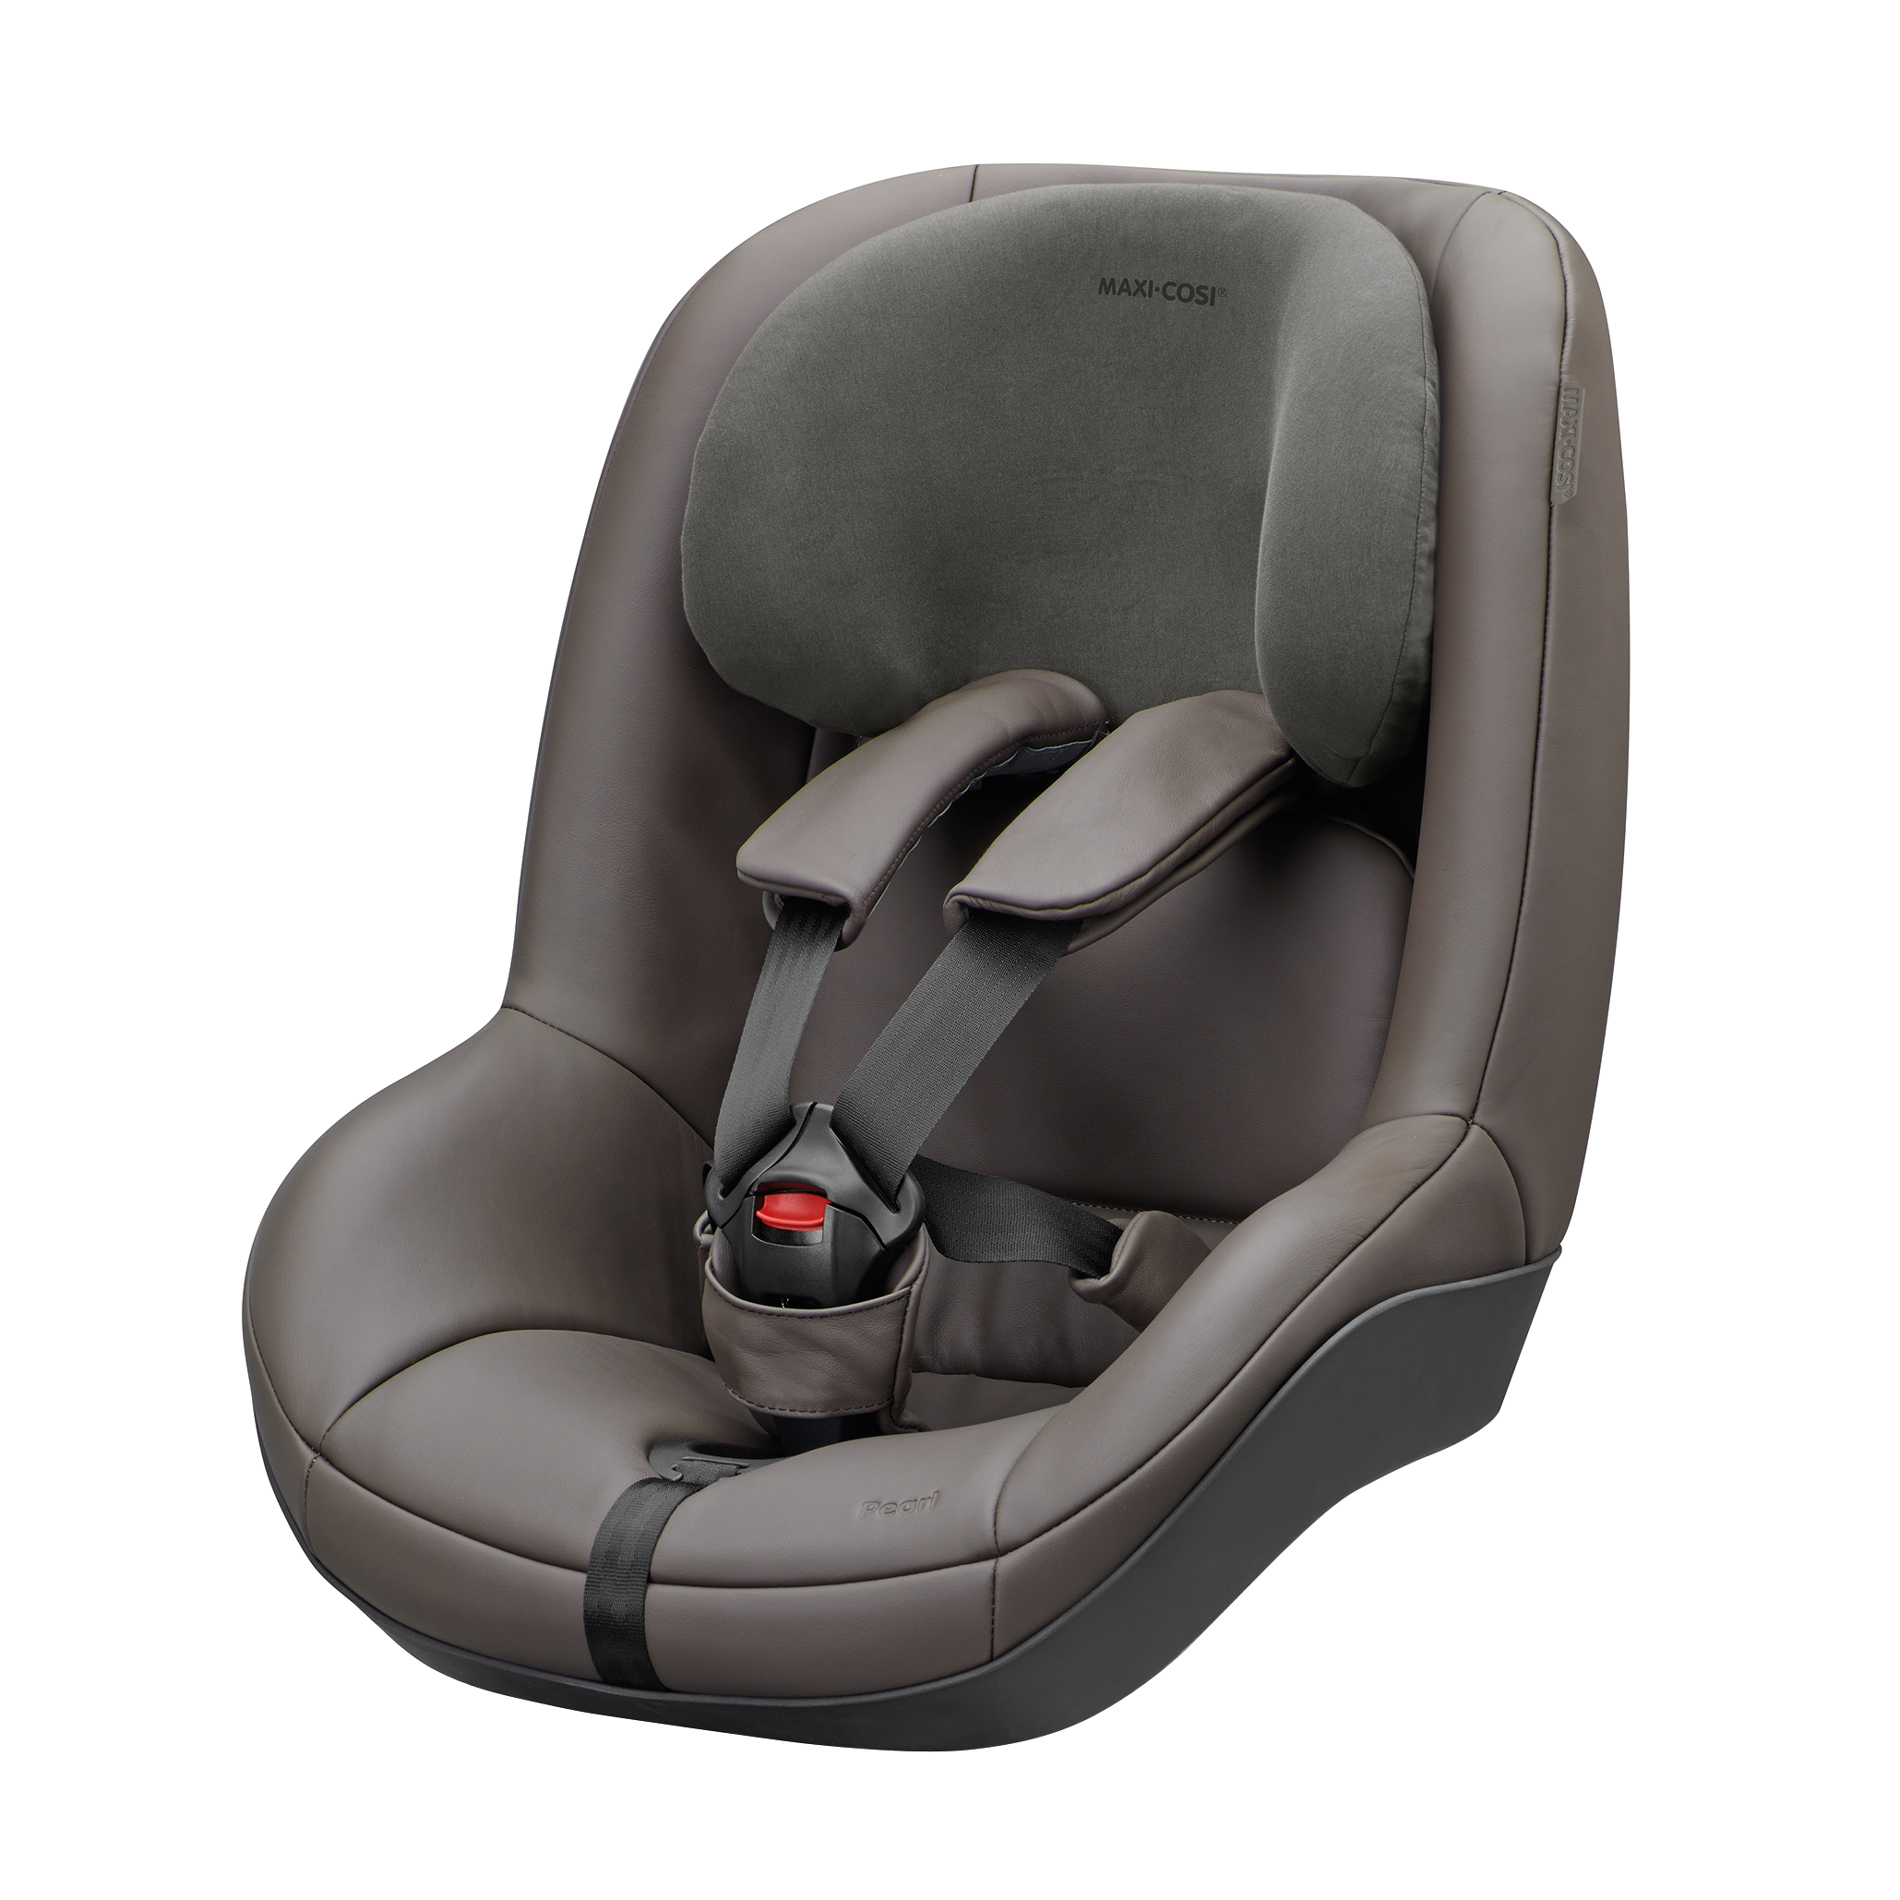 Maxi cosi leather edition 2way pearl 2018 buy at for Maxi cosi housse